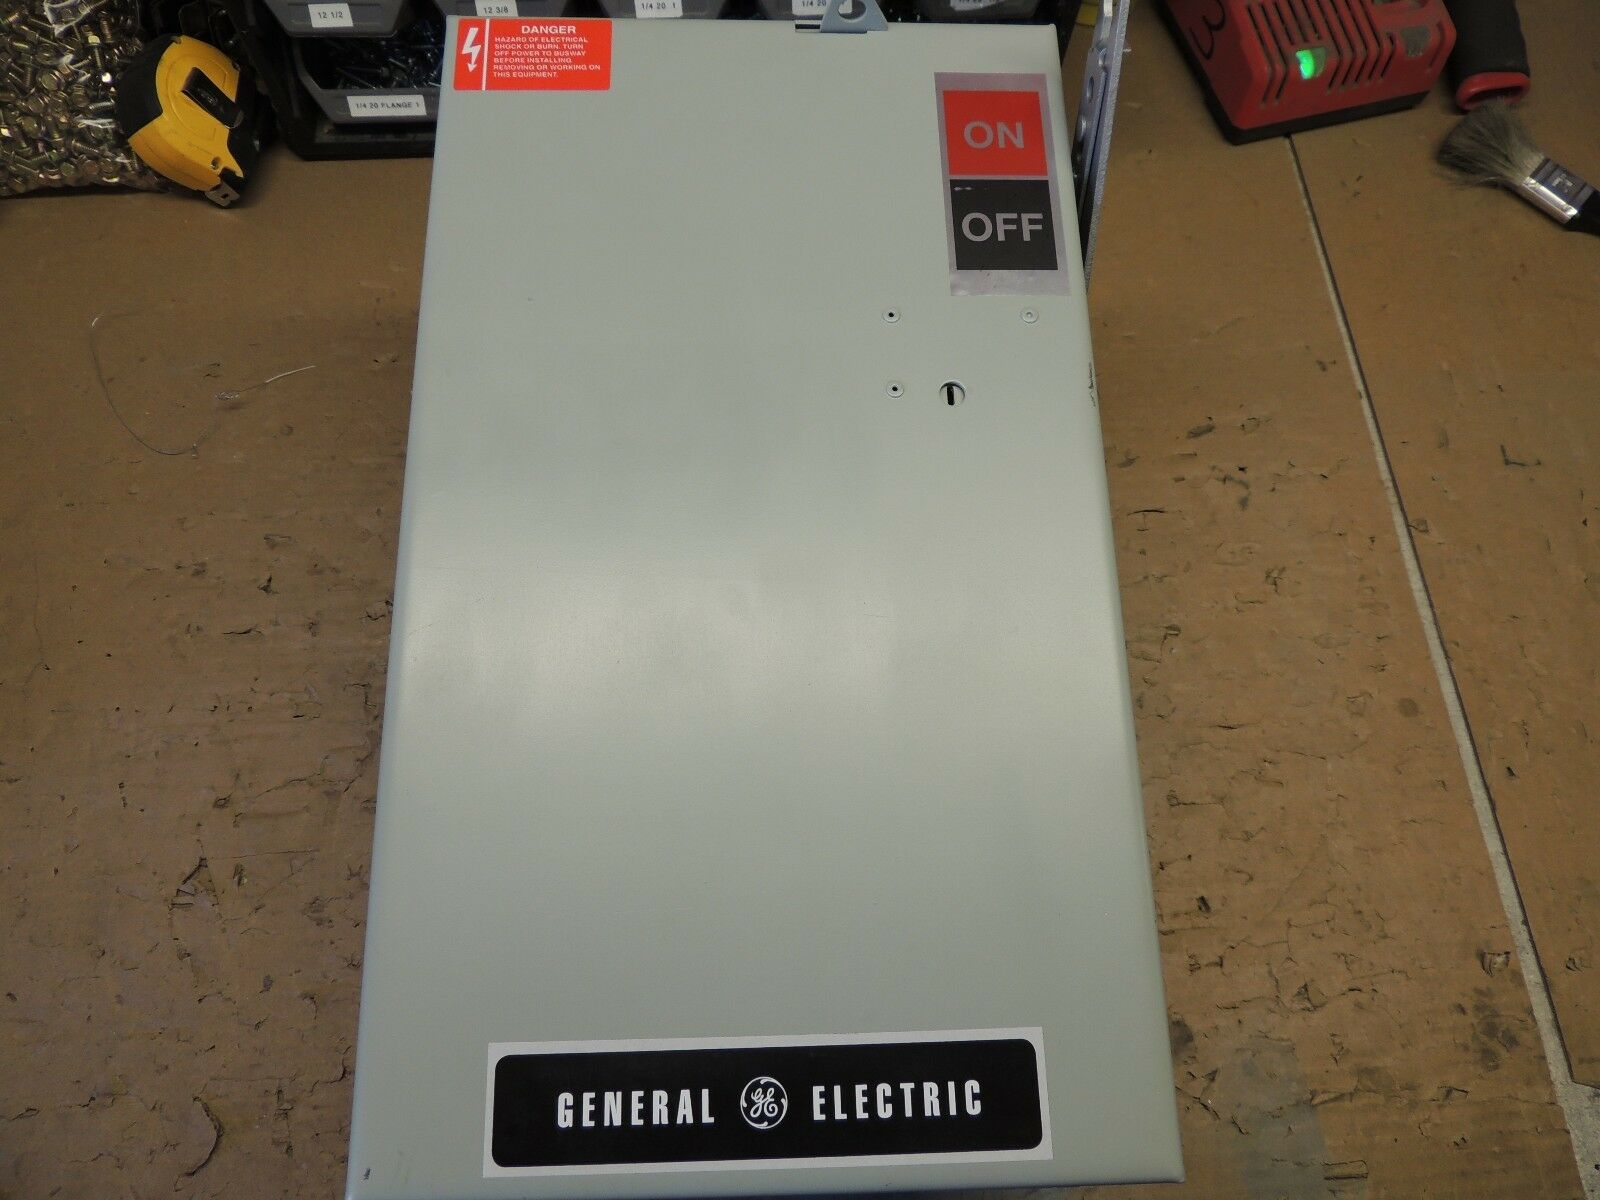 AC463R, GE BUSWAY SWITCH PLUG, RECON 100 AMP, 600V, WITH 4 WIRE